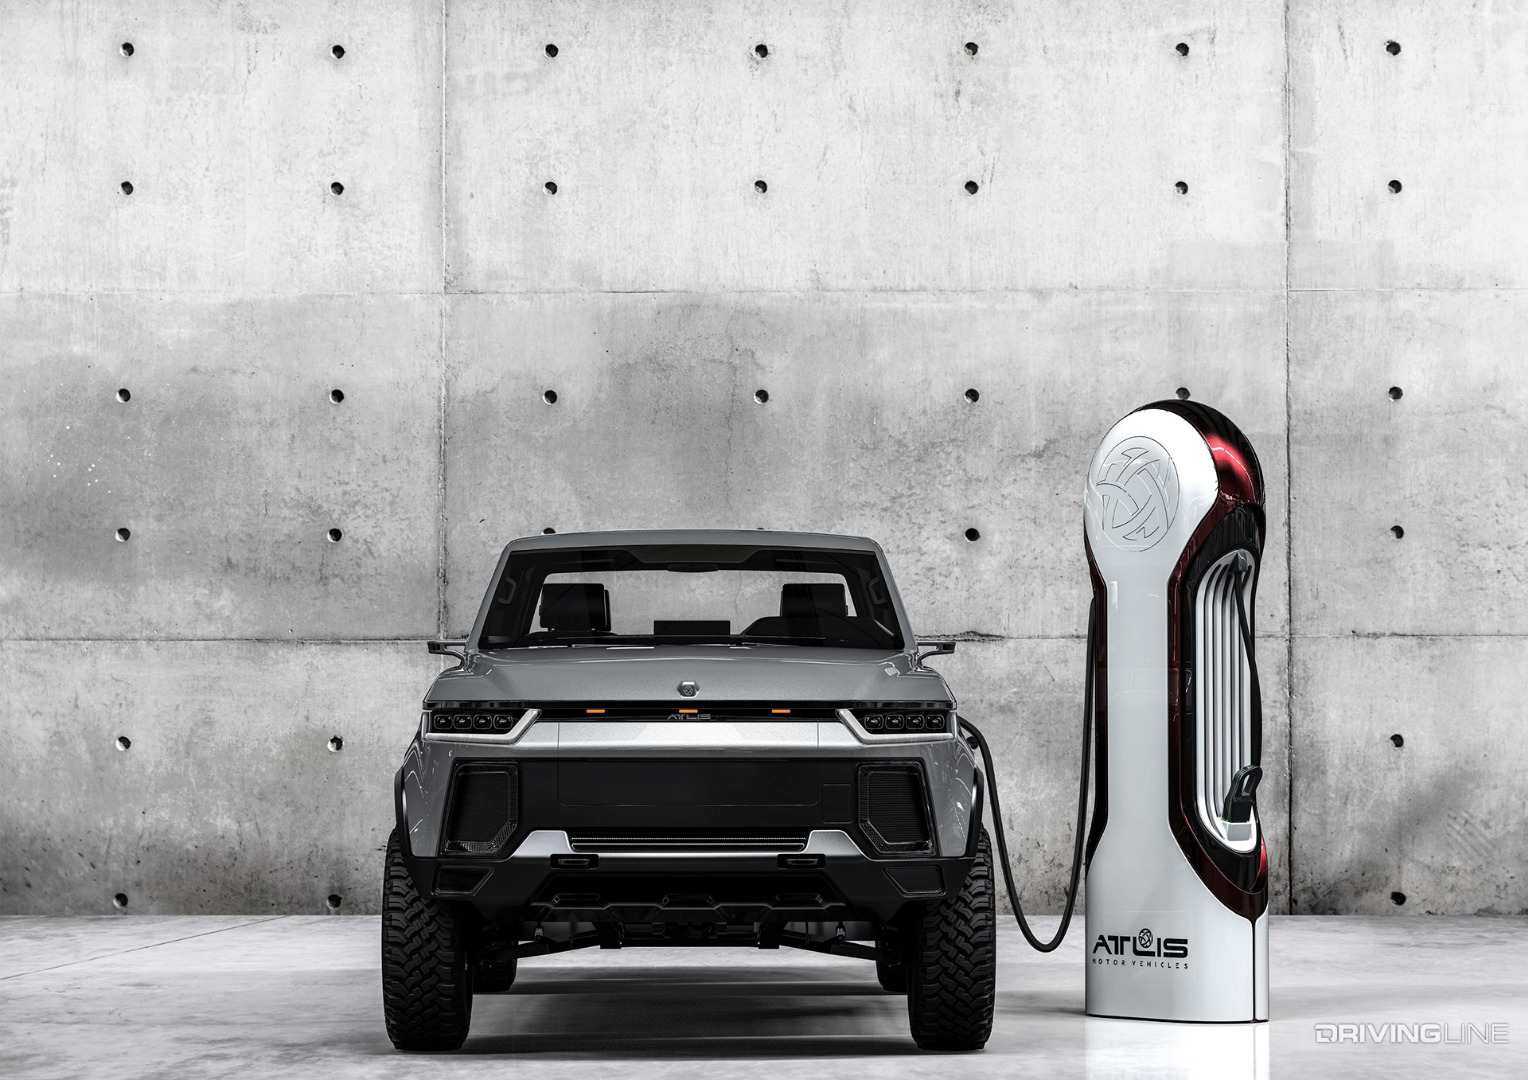 California considers electric-car V2G charging tech for